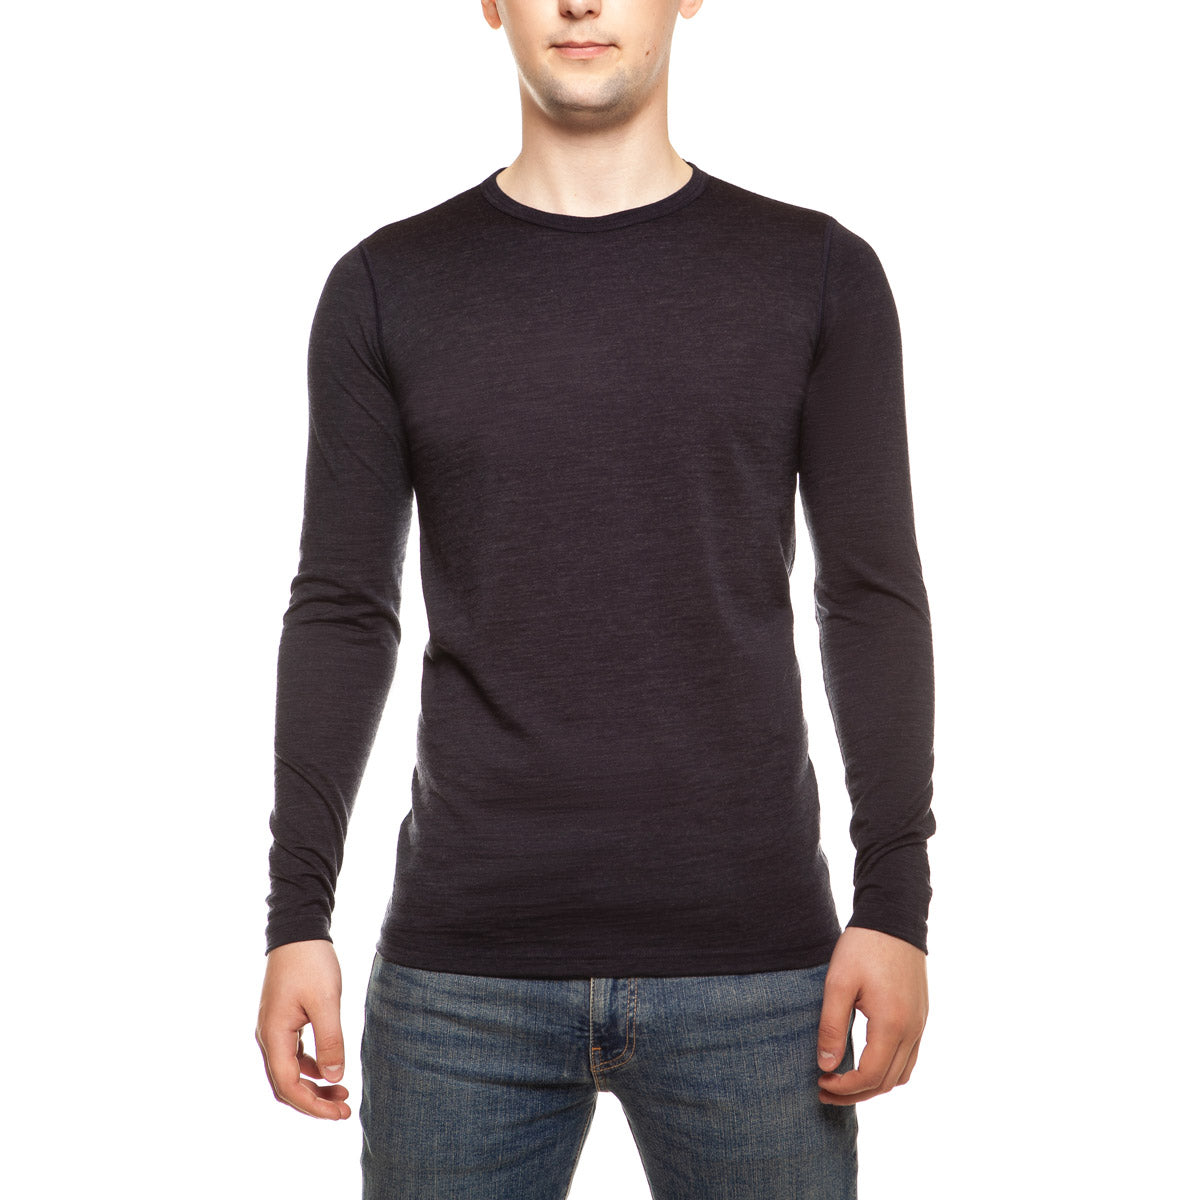 menique Men's Merino 160 Long Sleeve Crew Blue Melange Color